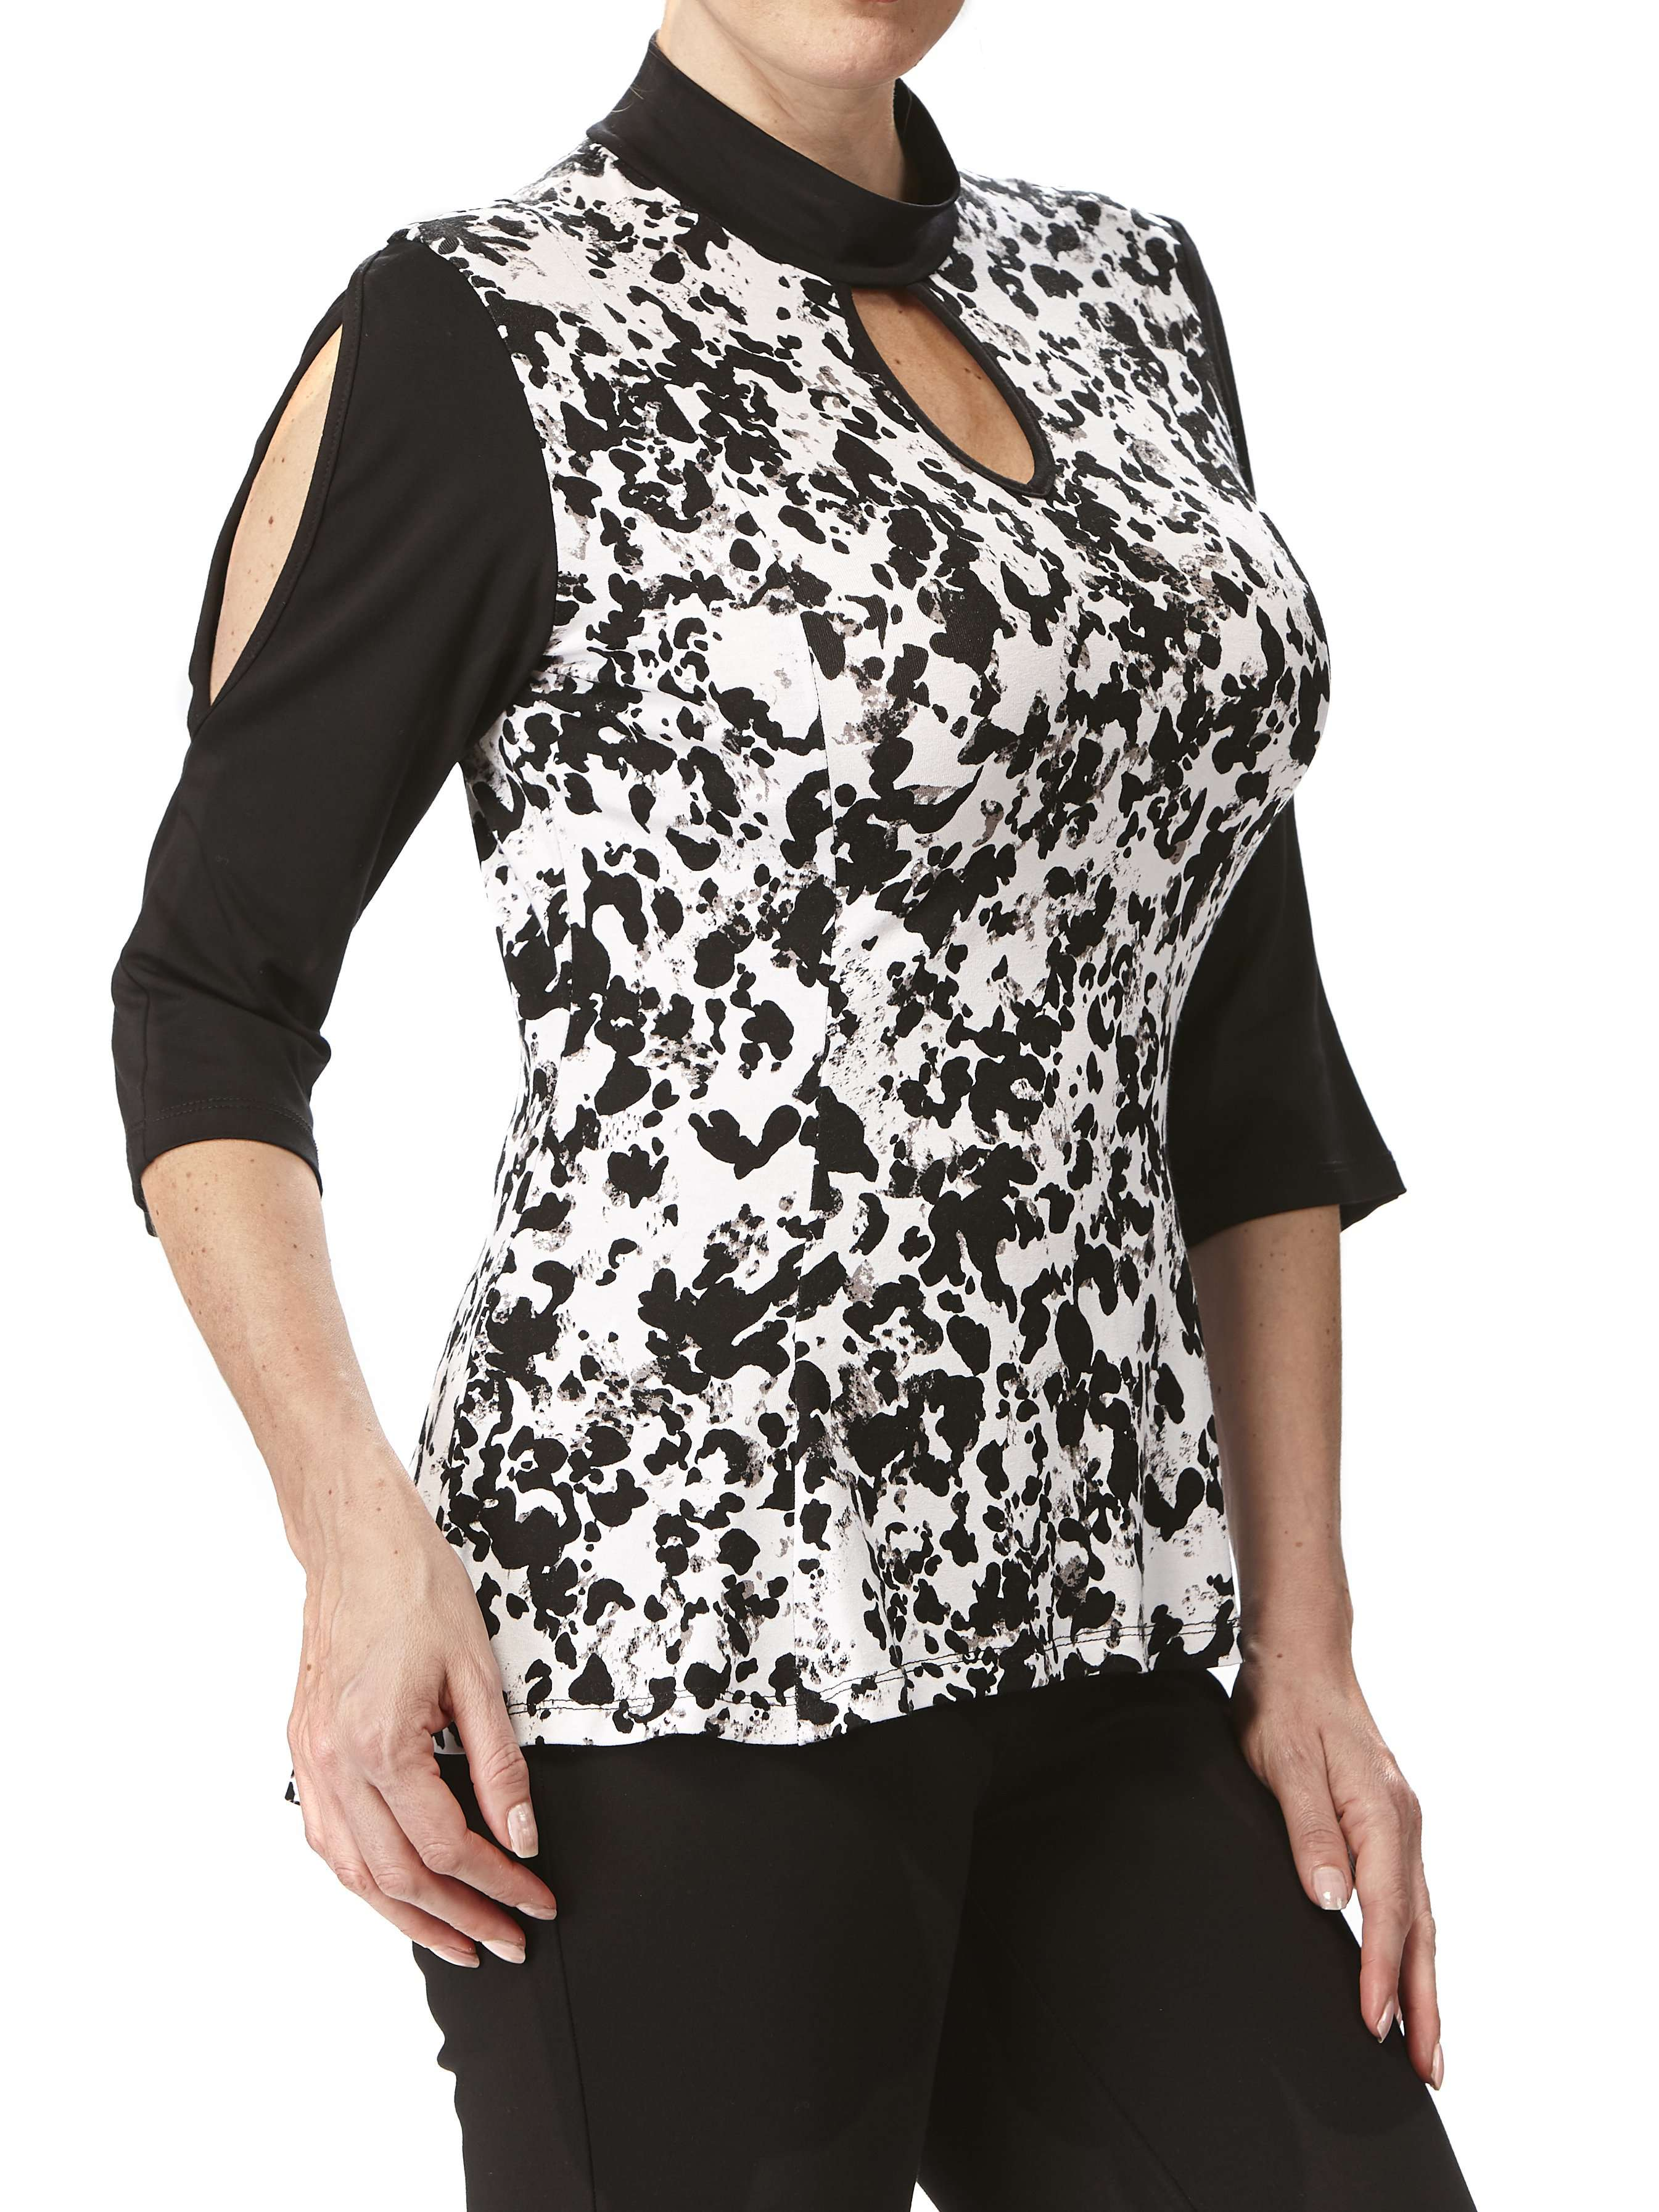 Women's Designer Tops on Sale Black and White Flattering Fit - Made in Canada - Yvonne Marie - Yvonne Marie